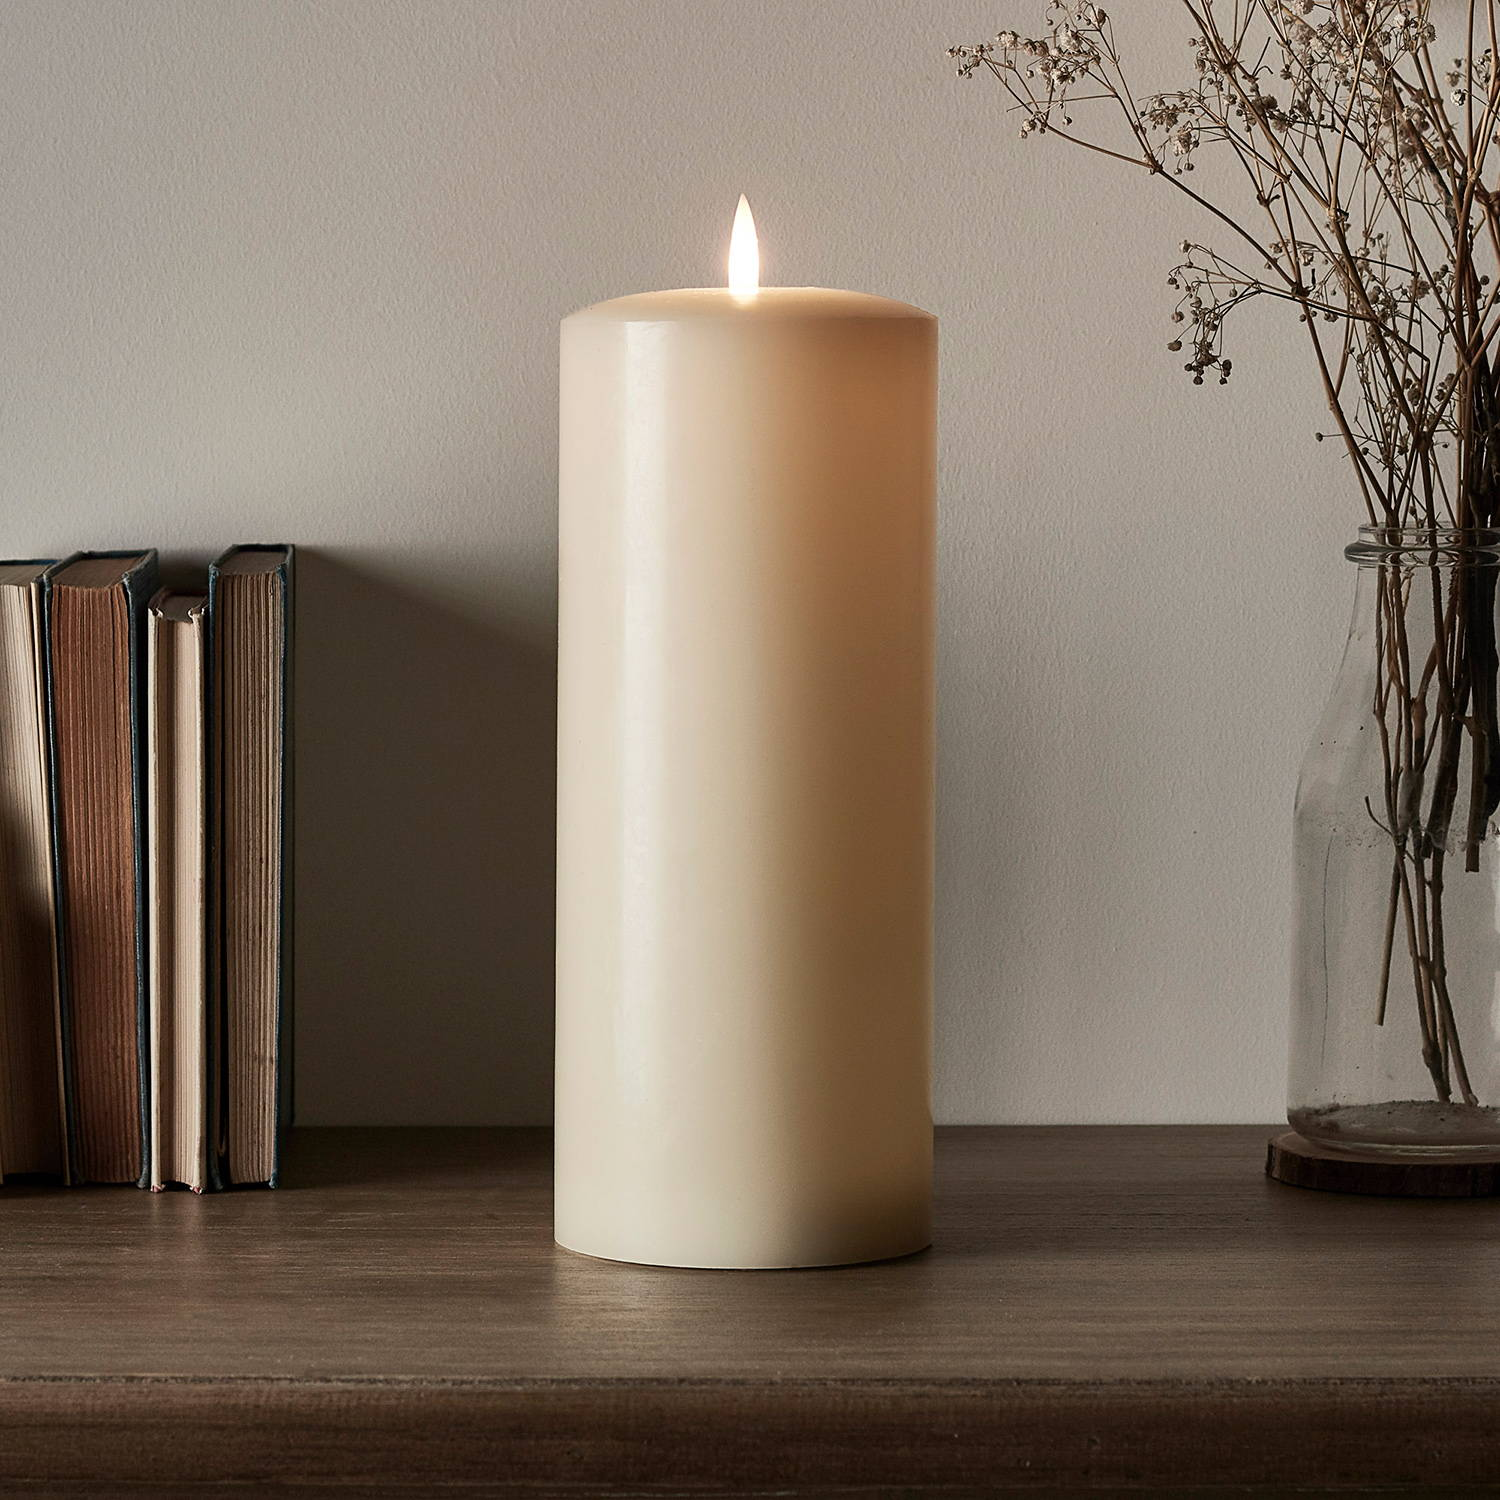 Ivory TruGlow chapel candle on table